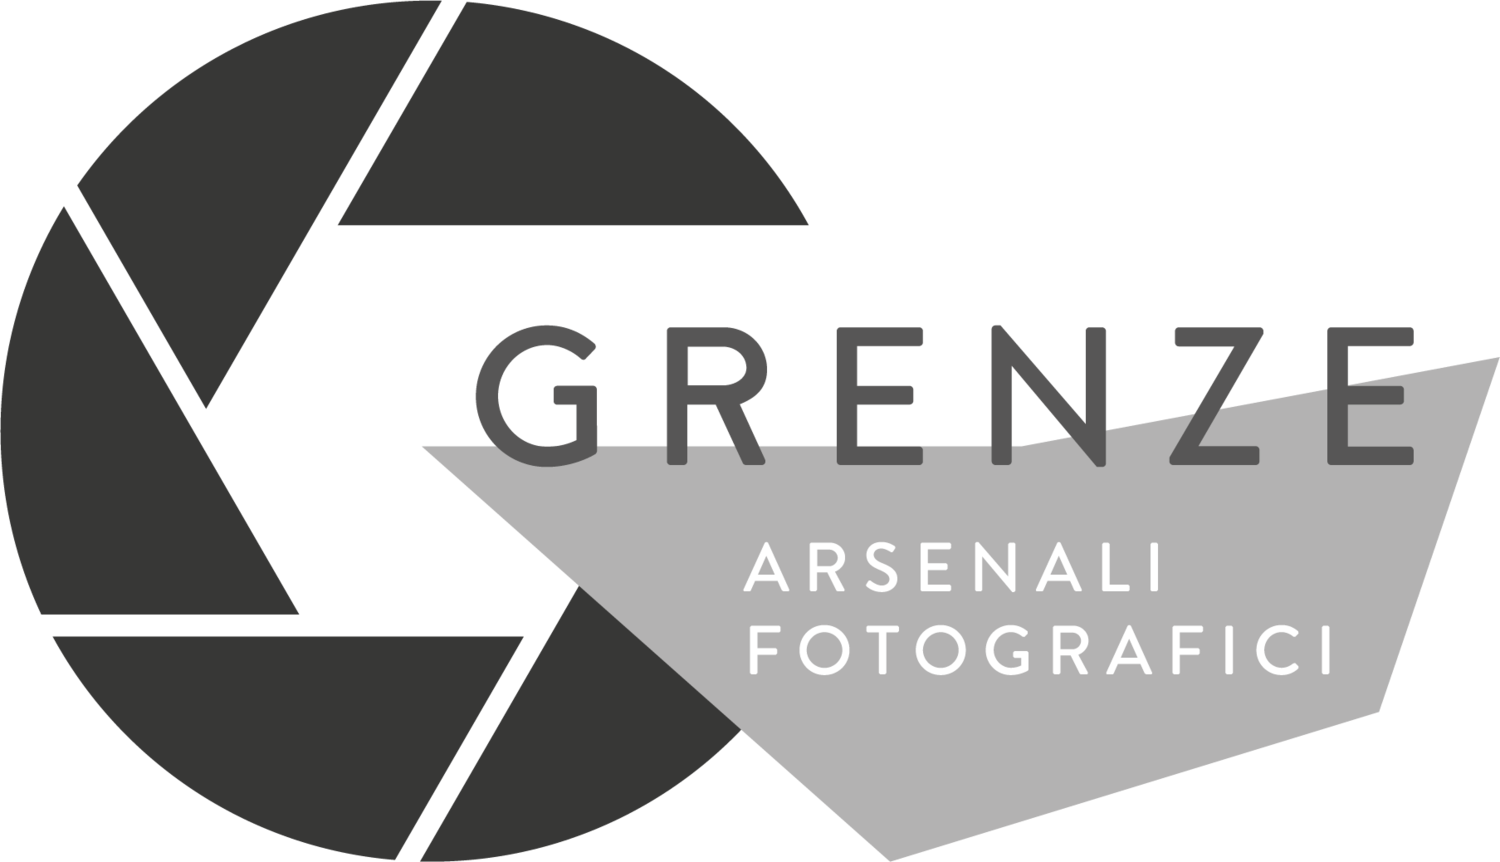 2nd Edition Grenze - Arsenali Fotografici - en